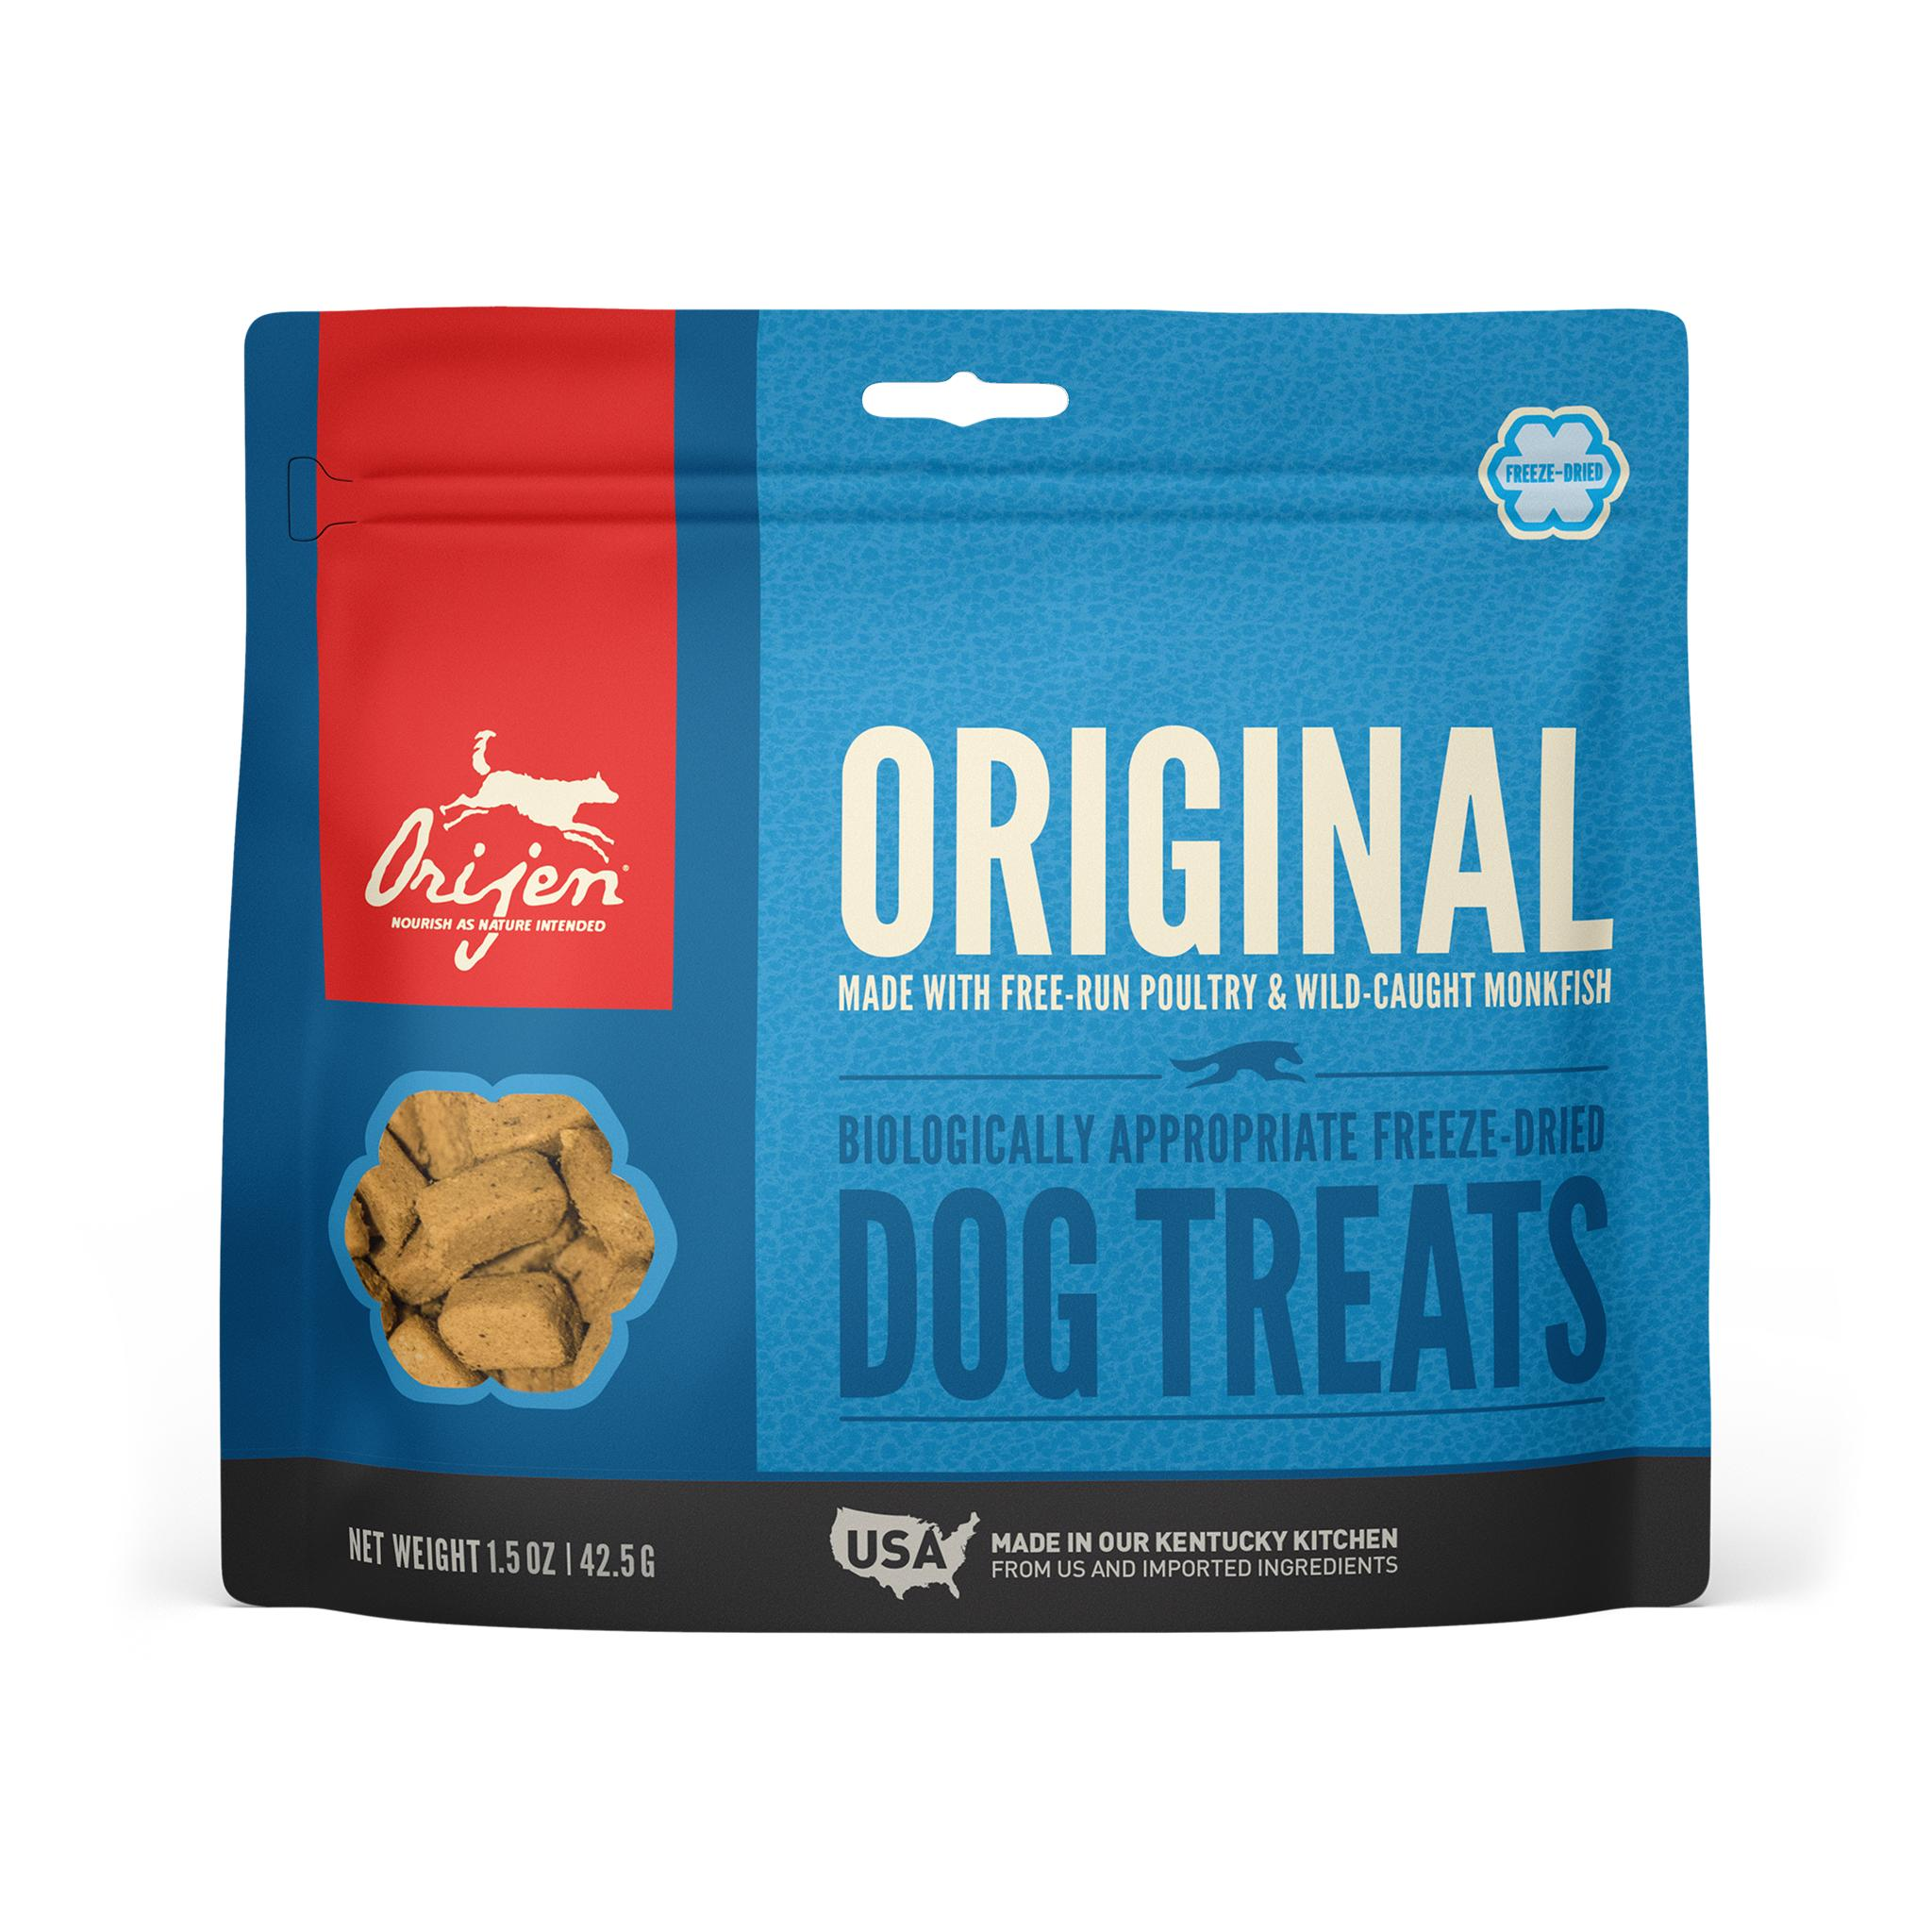 ORIJEN Original Grain-Free Freeze-Dried Dog Treats, 1.5-oz